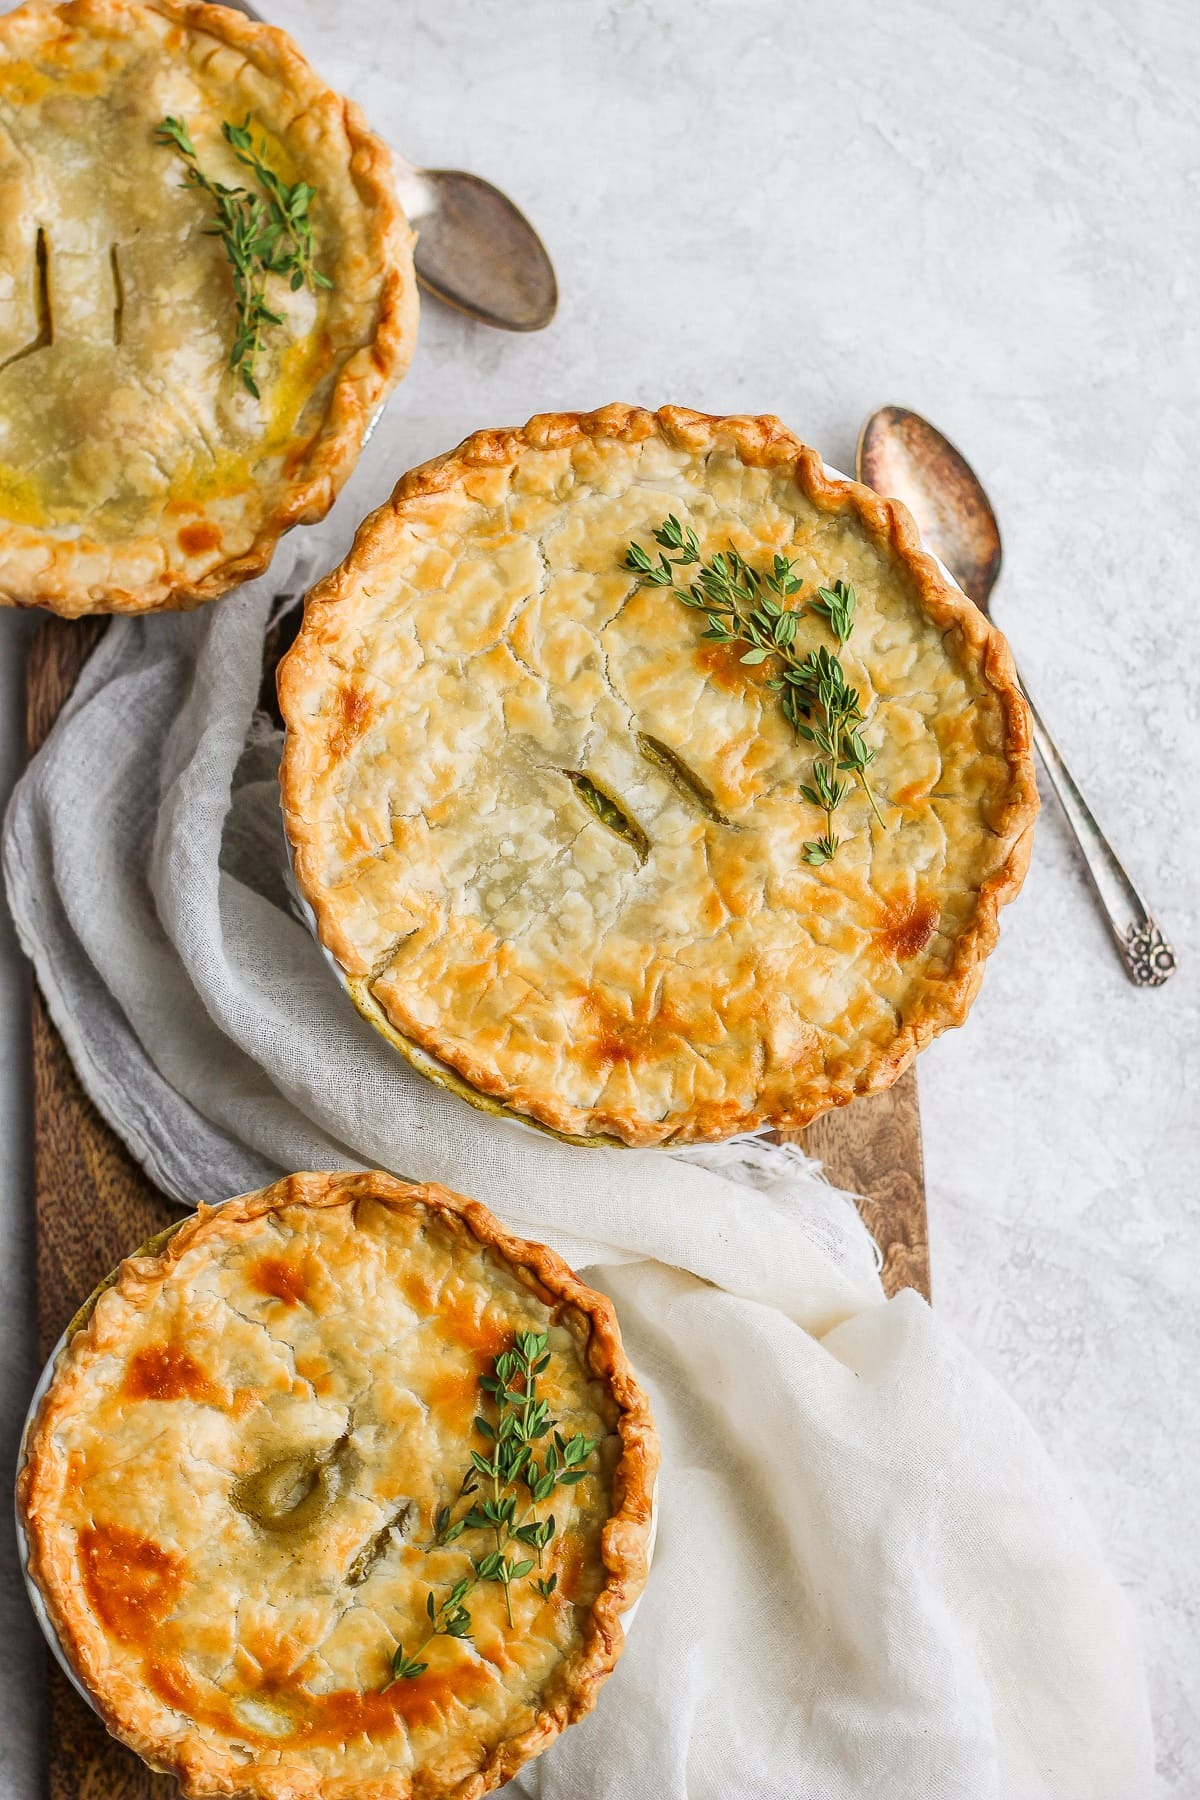 Creamy Fall Harvest Dairy-Free Veggie Pot Pies - warm and comforting pot pies that are dairy-free! #dairyfree #potpie #fallrecipes